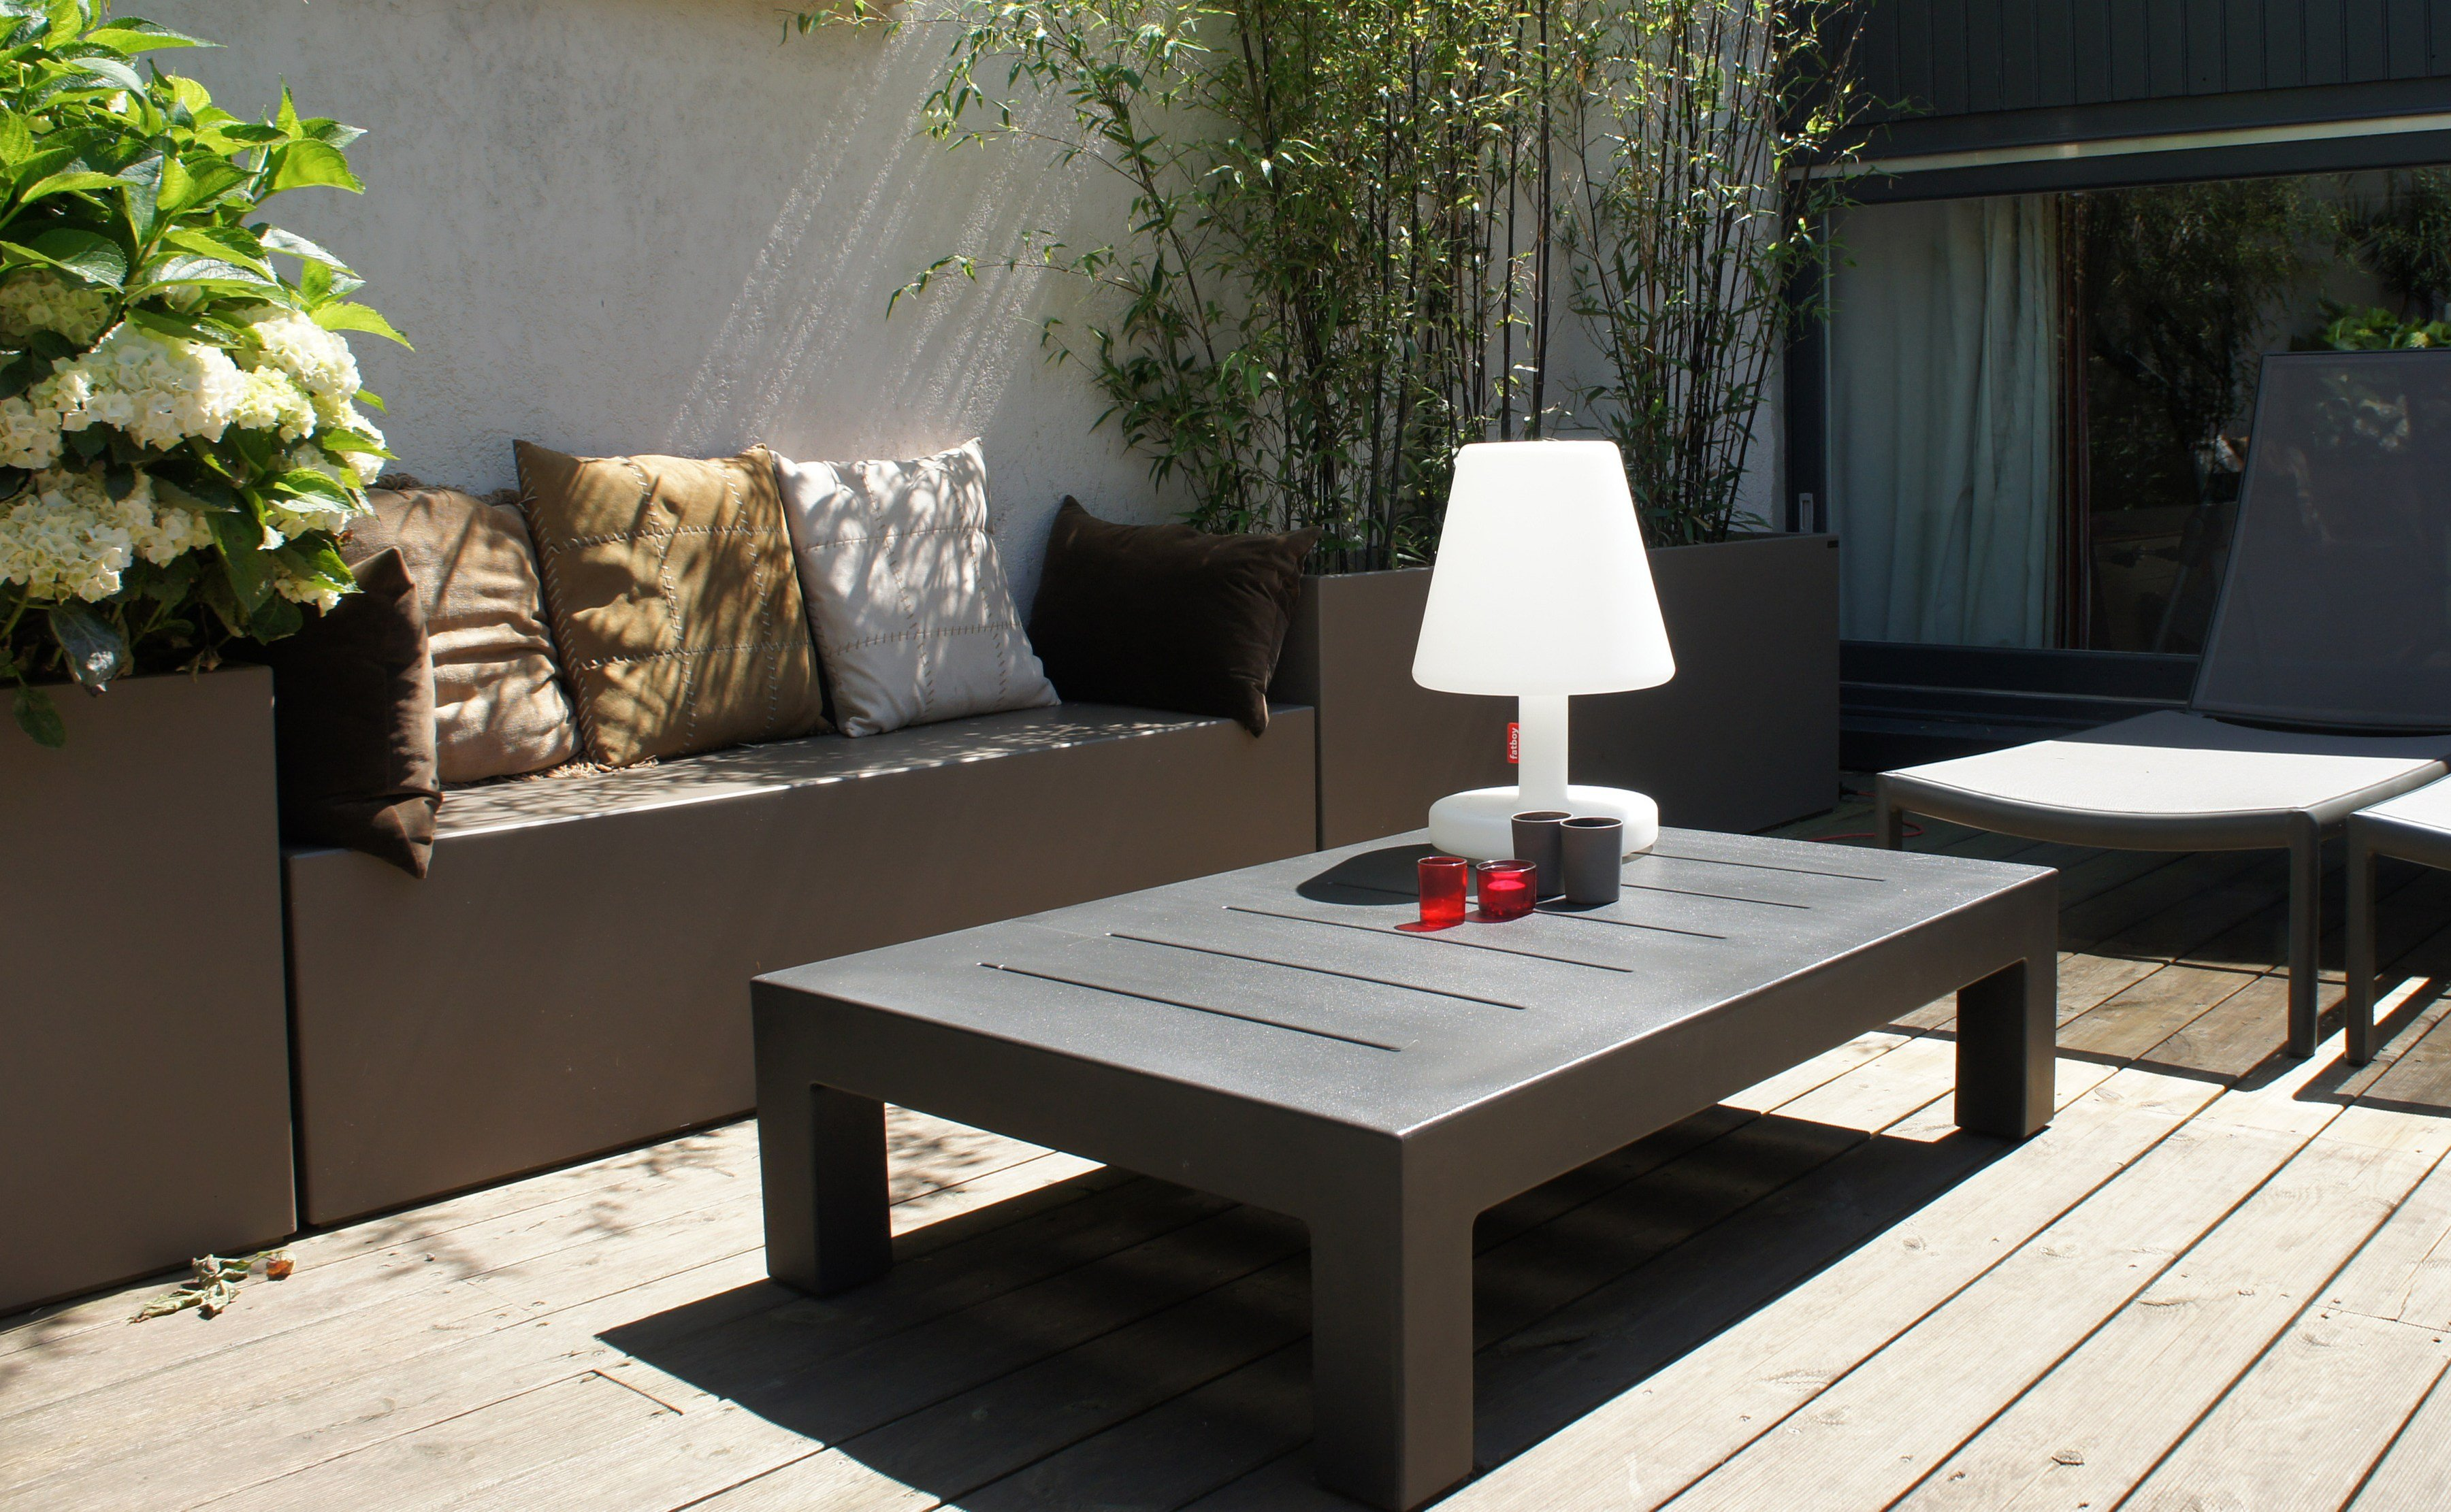 Banc de jardin avec jardini re int gr e by image 39 in by - Banc de jardin en ciment ...